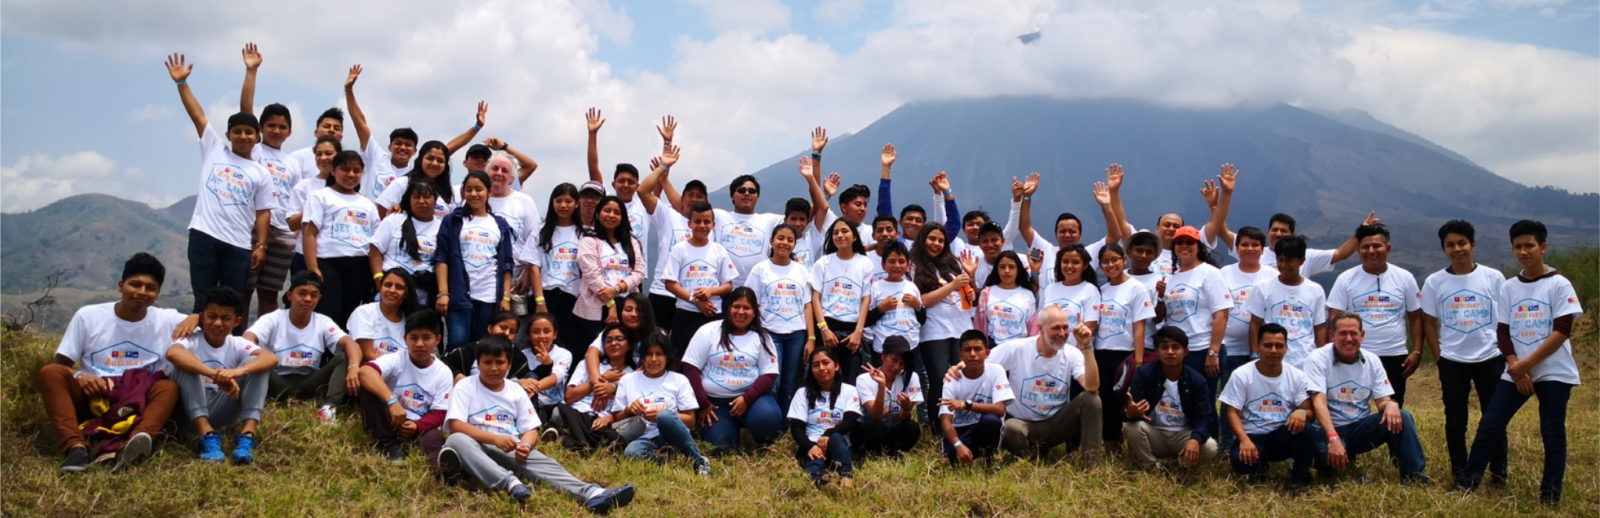 GuatemalaFoursquareYouthCamp2019Cropped